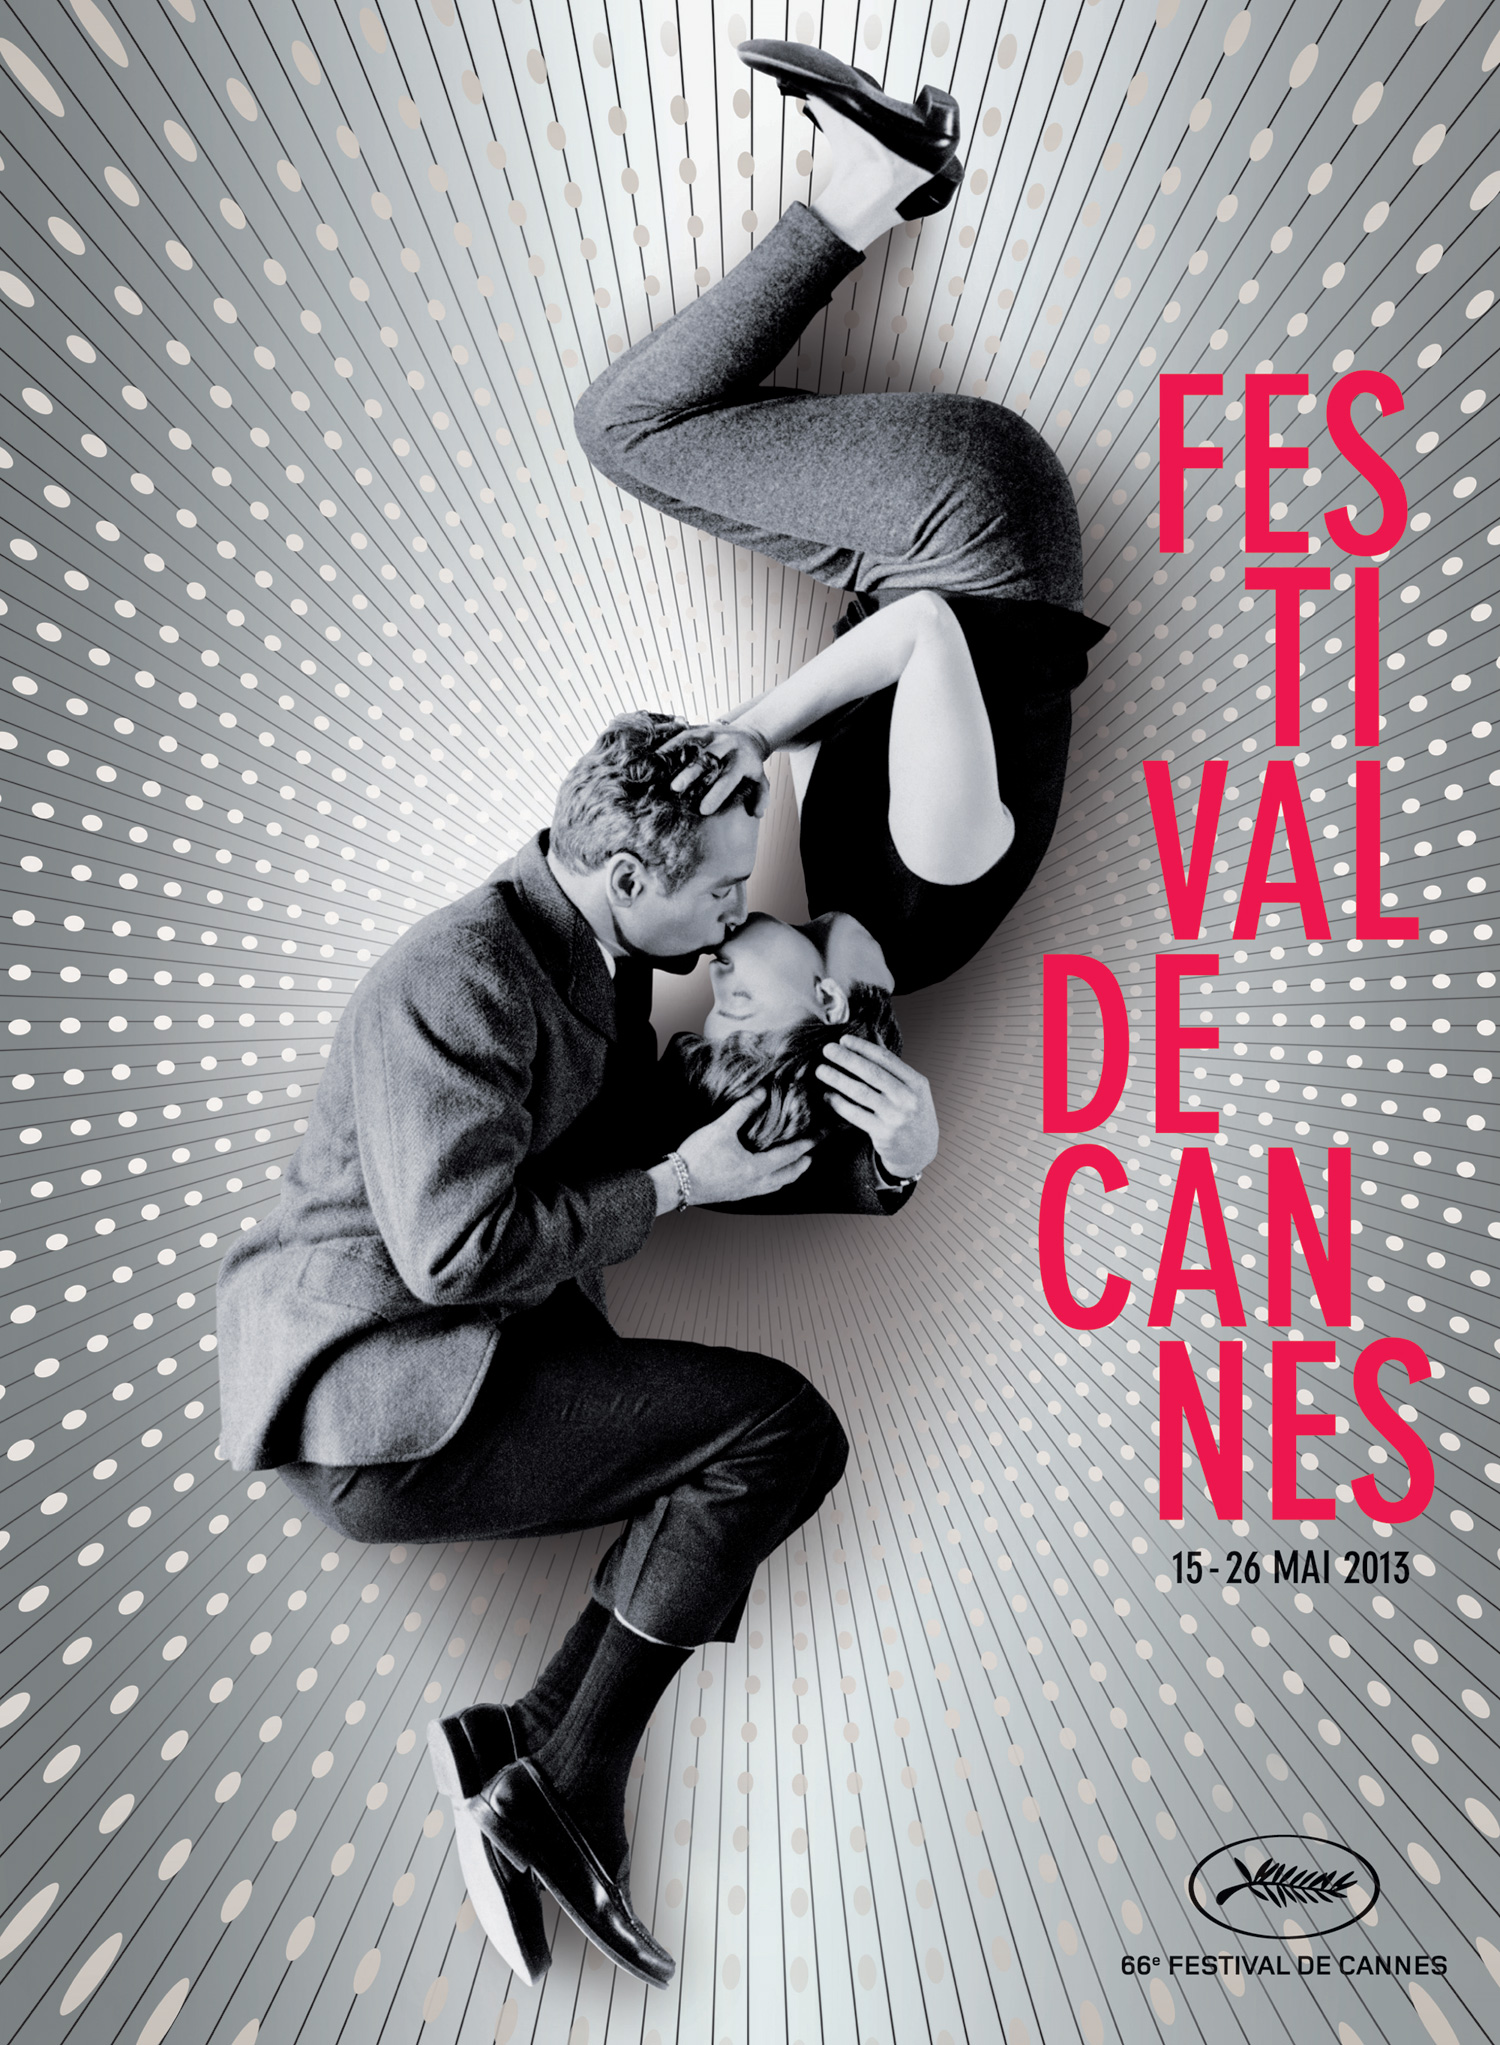 http://cinemateaser.com/wordpress/wp-content/uploads/2013/03/Cannes-2013-Poster-HR.jpg